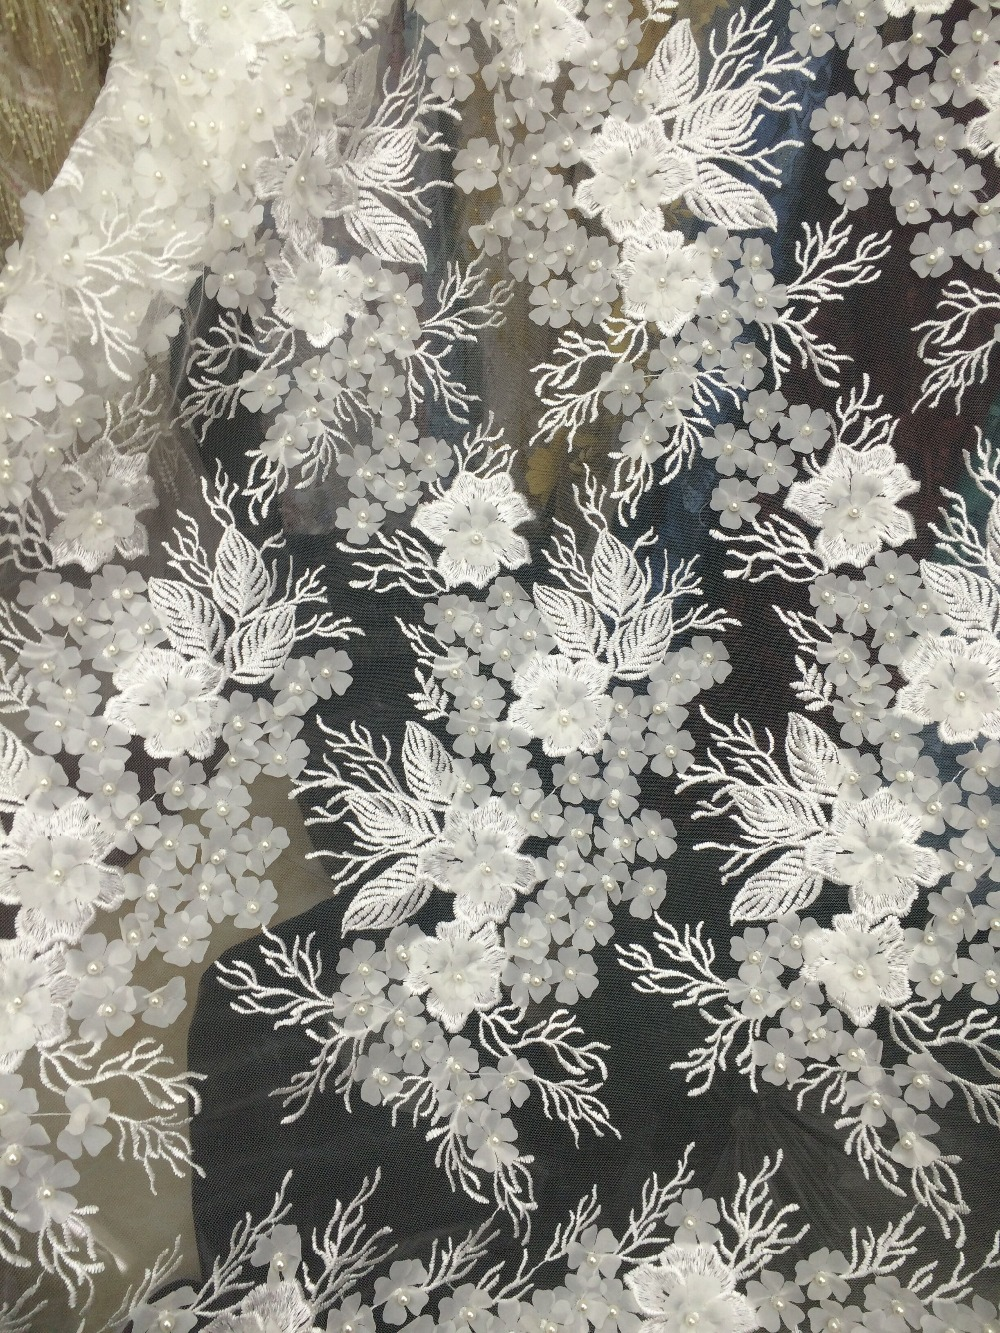 3D Beaded flower Lace Fabric Fashion LJY 102946 African Lace Fabric Tulle African French Lace Fabric